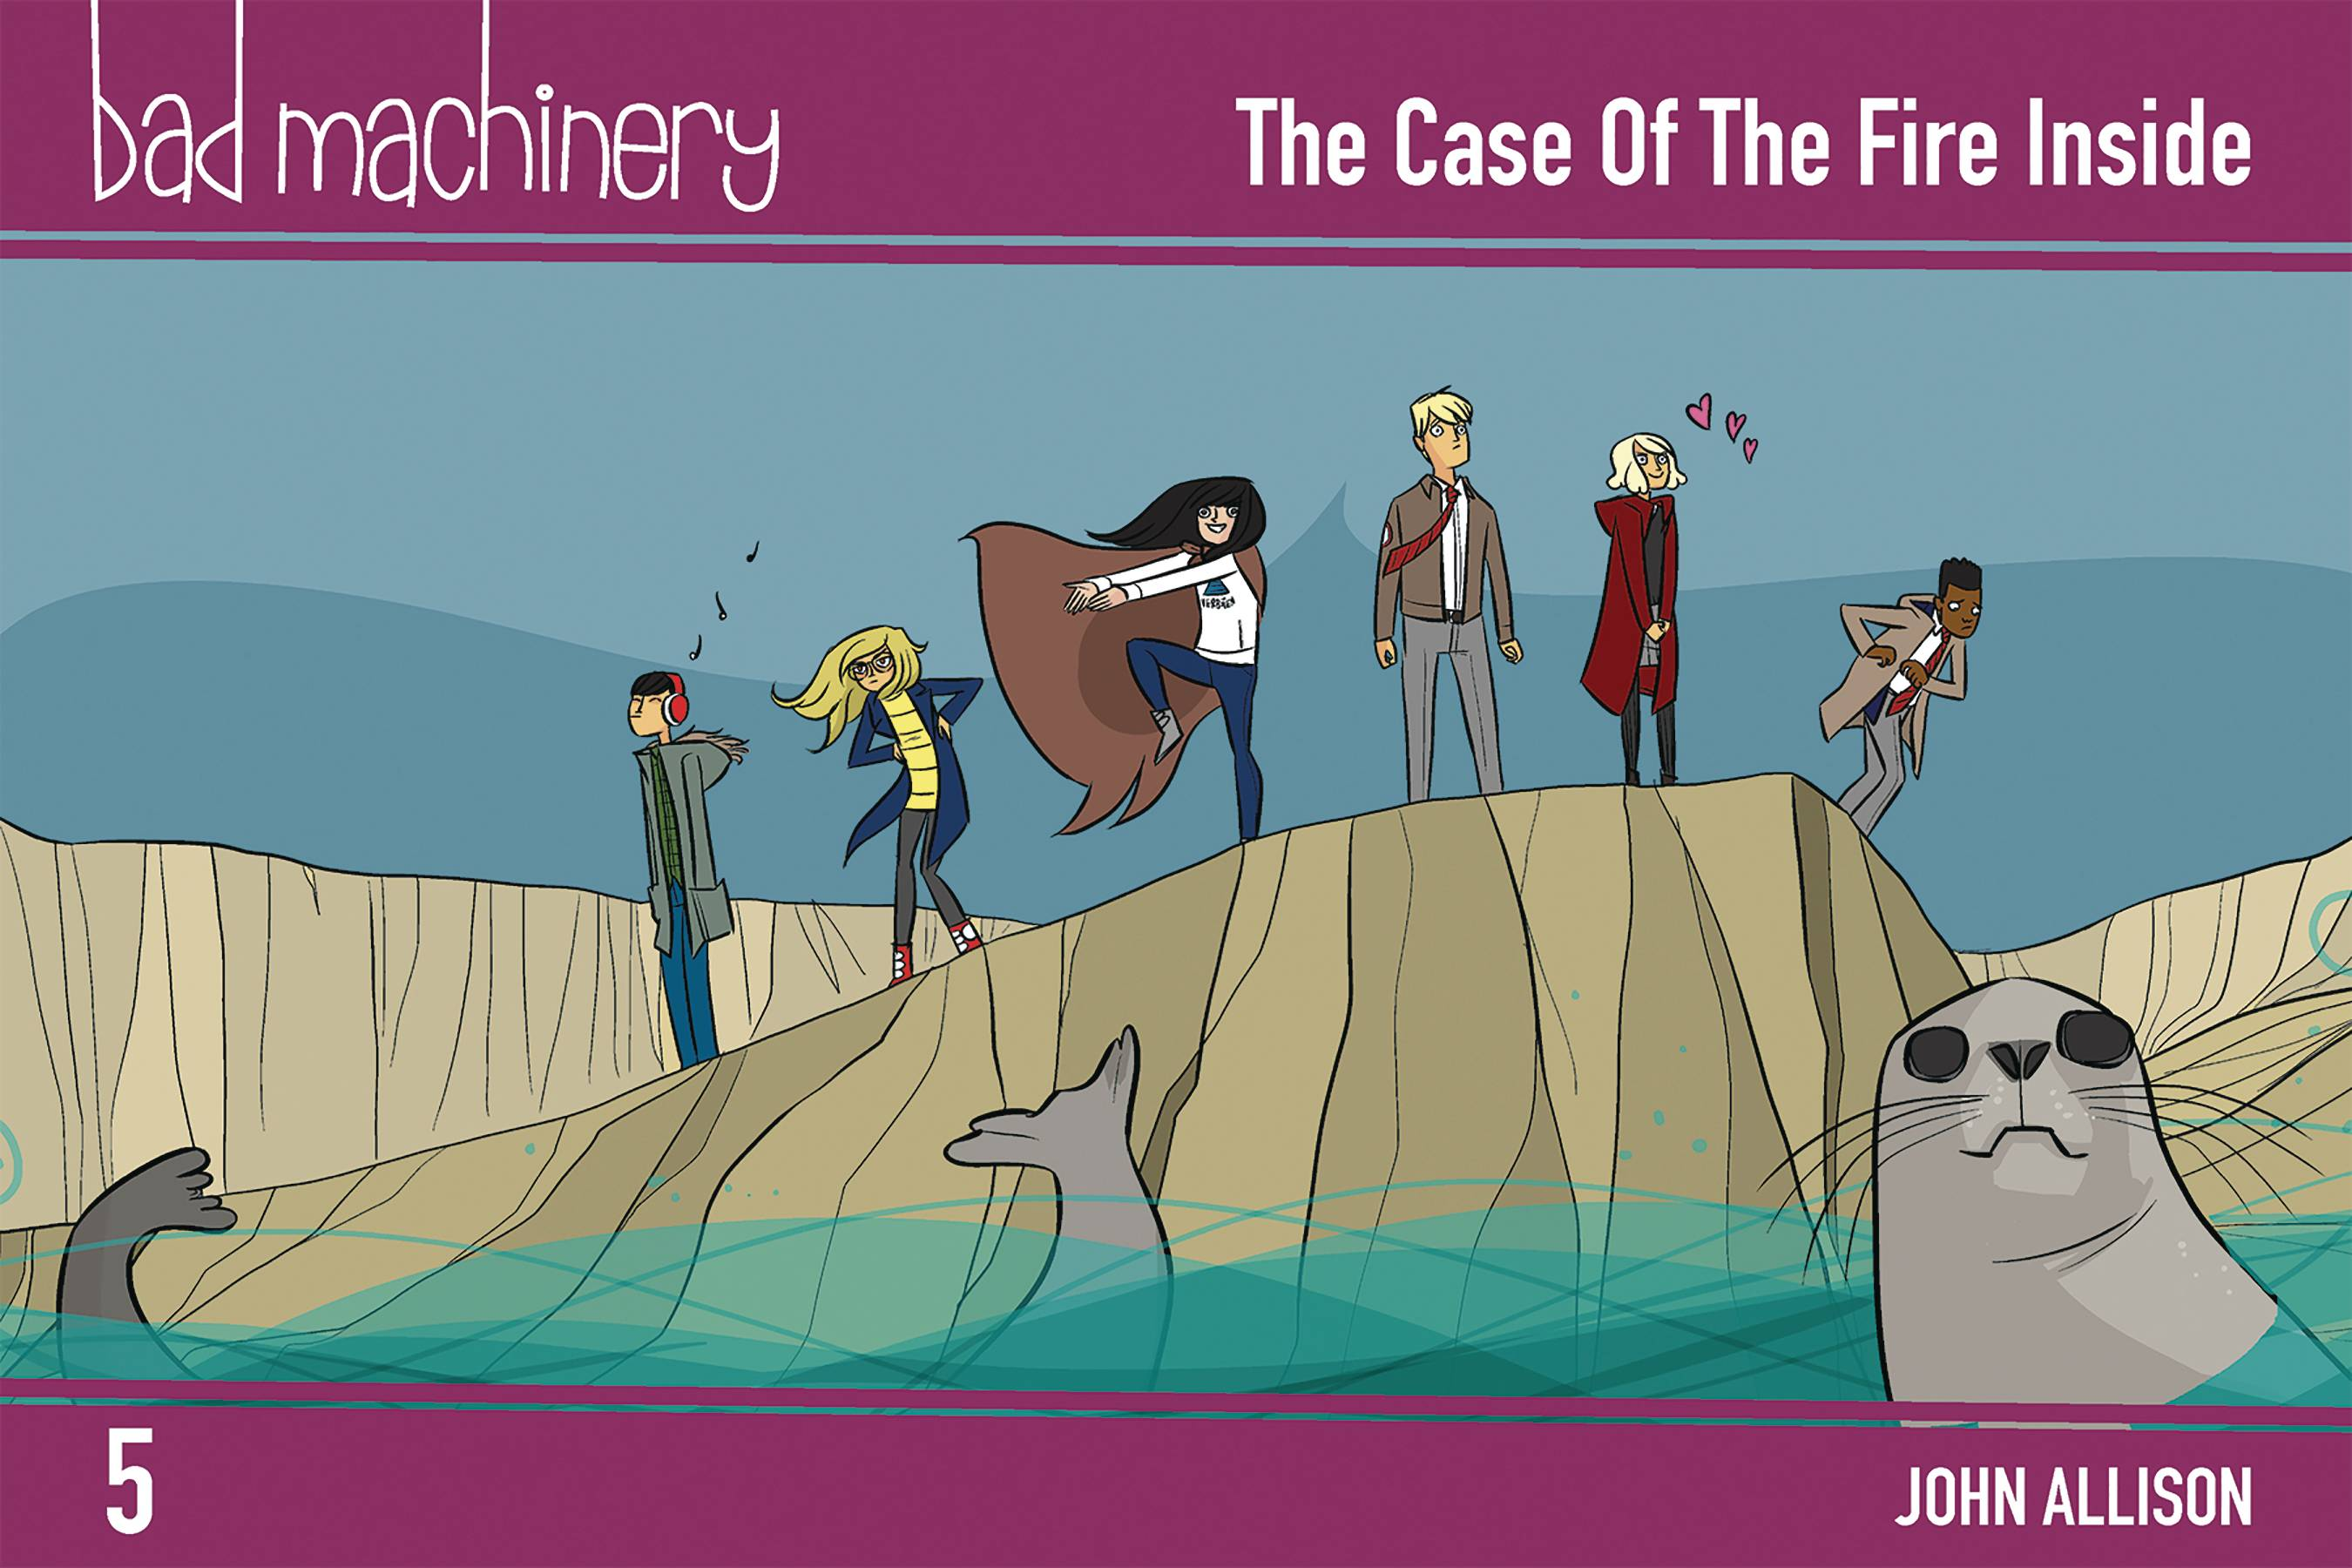 Bad Machinery Pocket Ed GN Vol 5